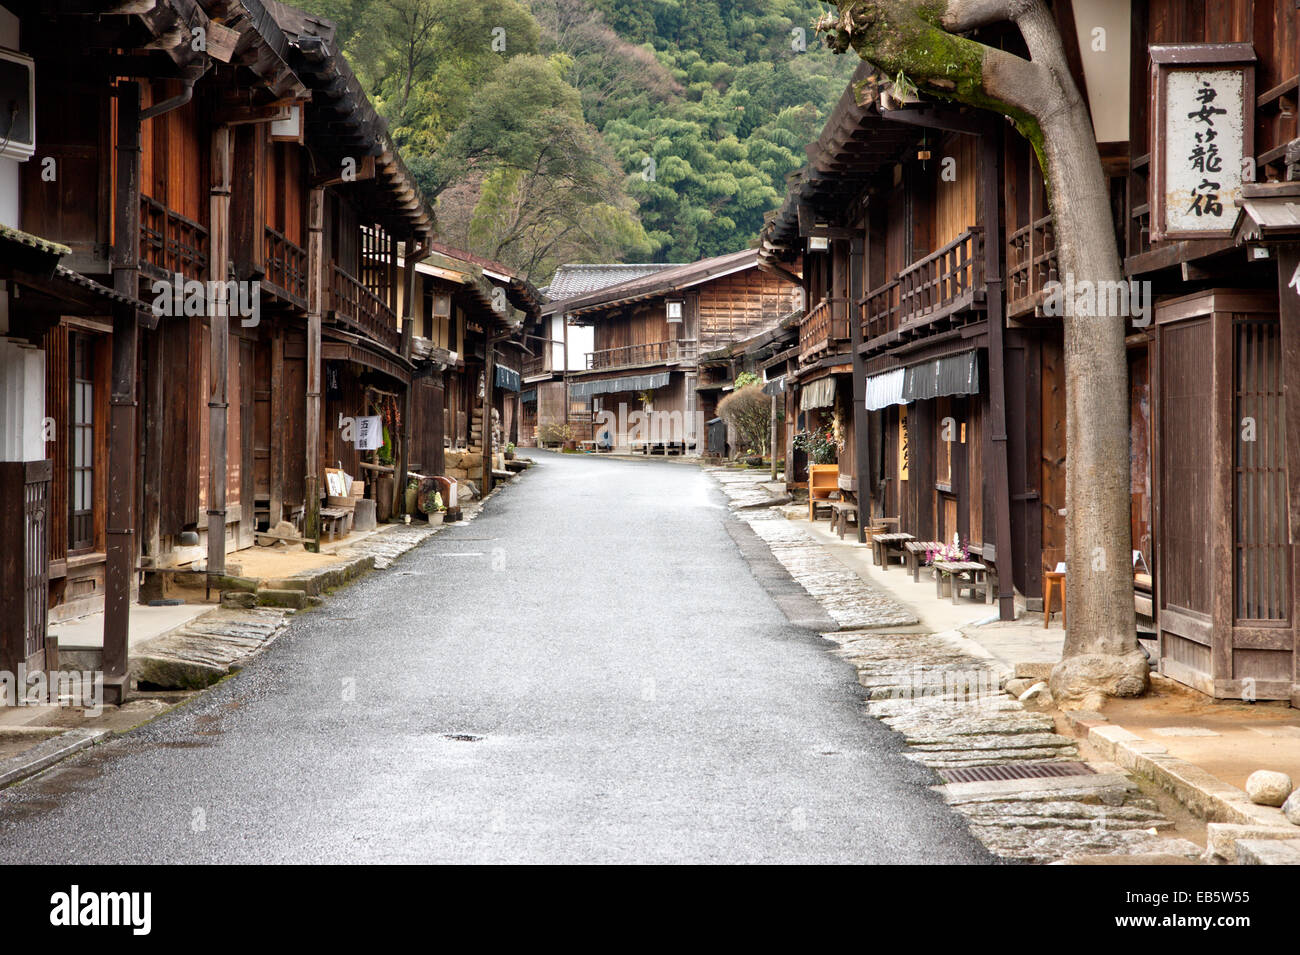 Tsumago, Japan. Street of Terashita, view along street with traditional inns and shops on both sides. Overcast weather. - Stock Image